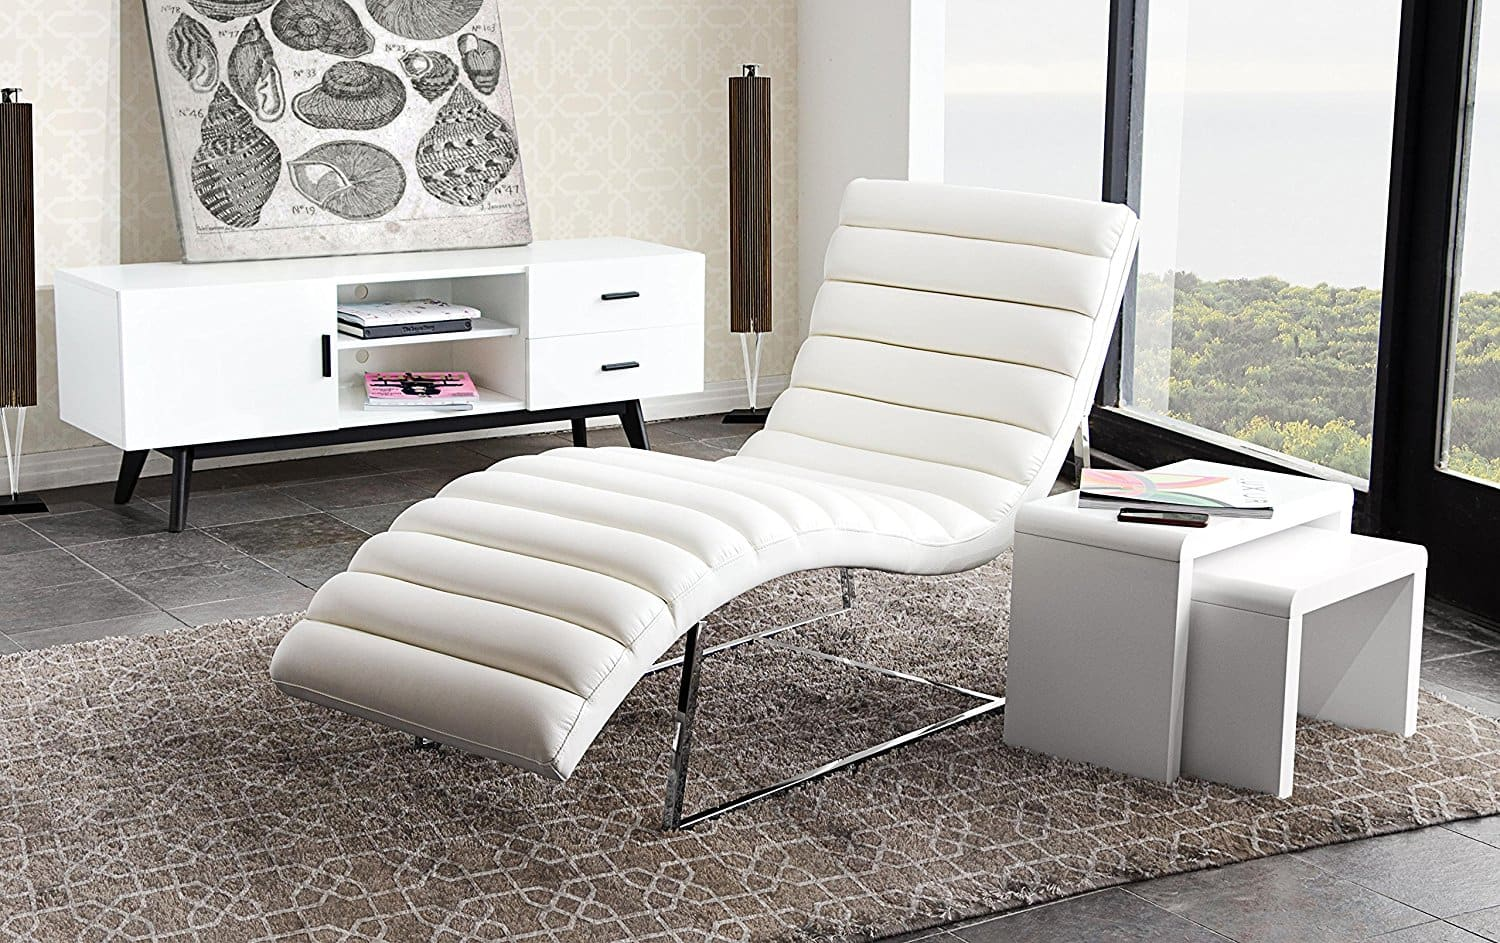 Modern Chaise Lounge 12 Of The Best Looking Modern Chaise Lounges | Apartment